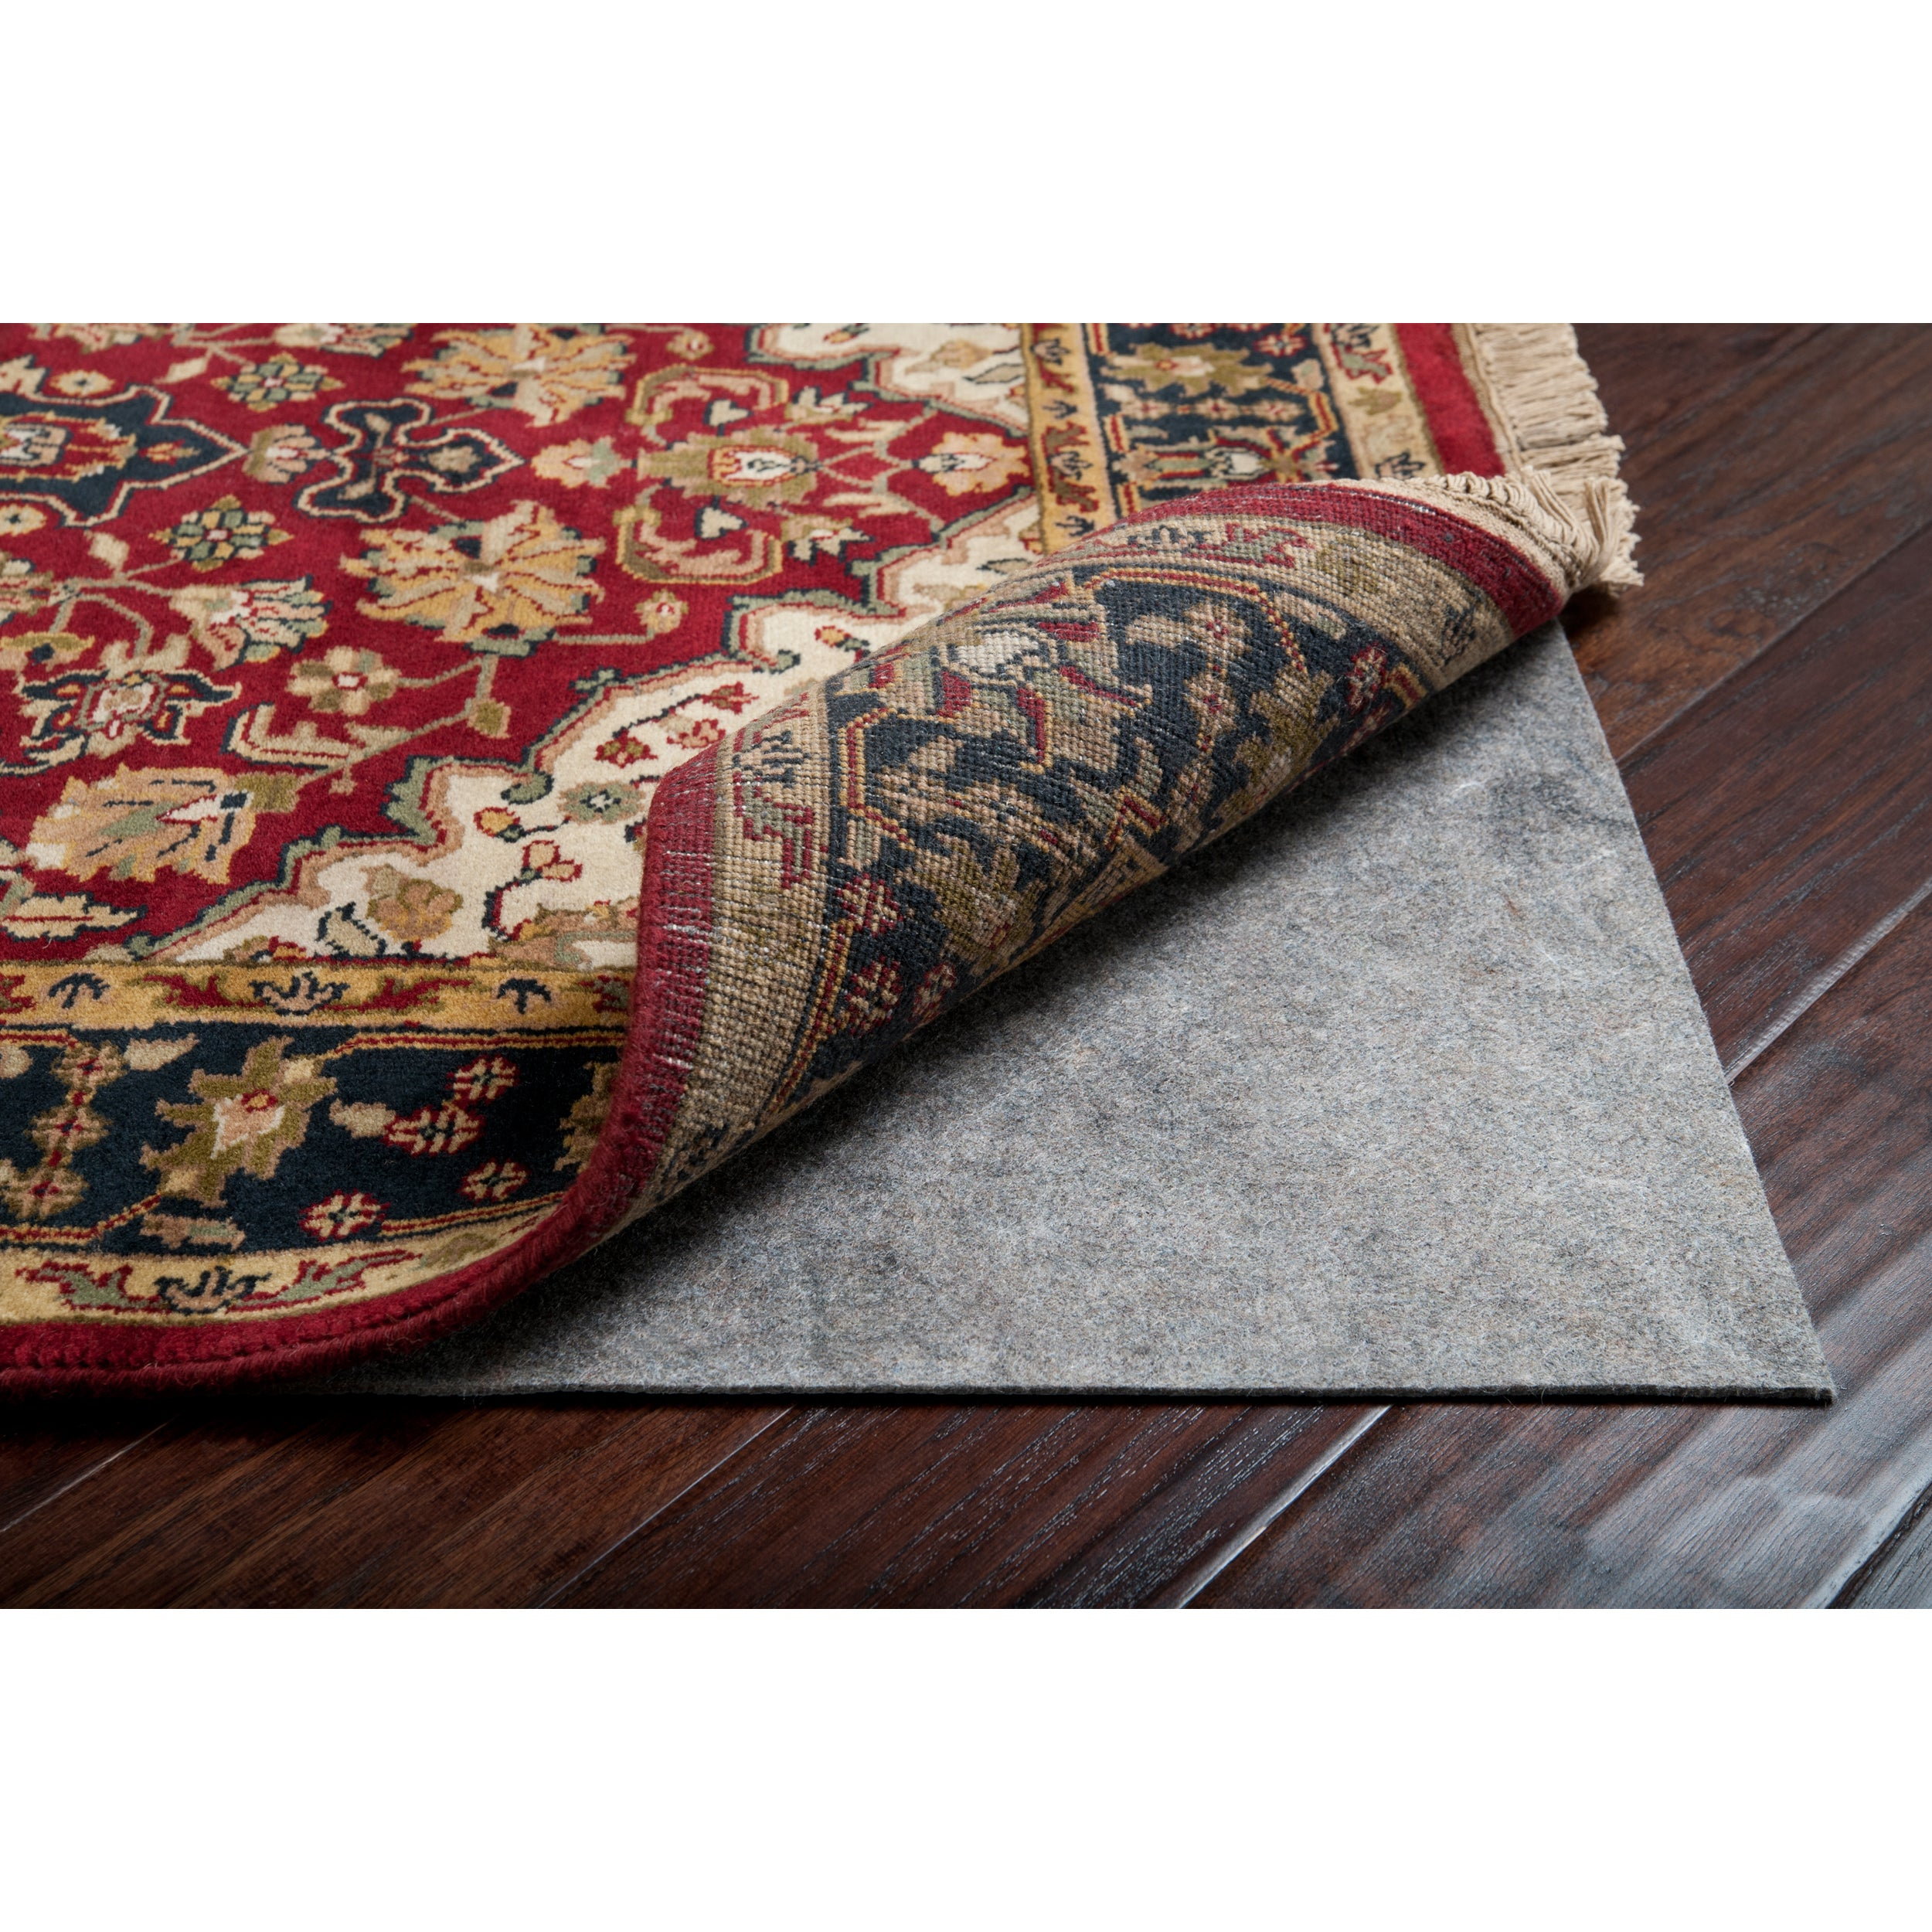 Rotell Rug Pad - 12' x 15'